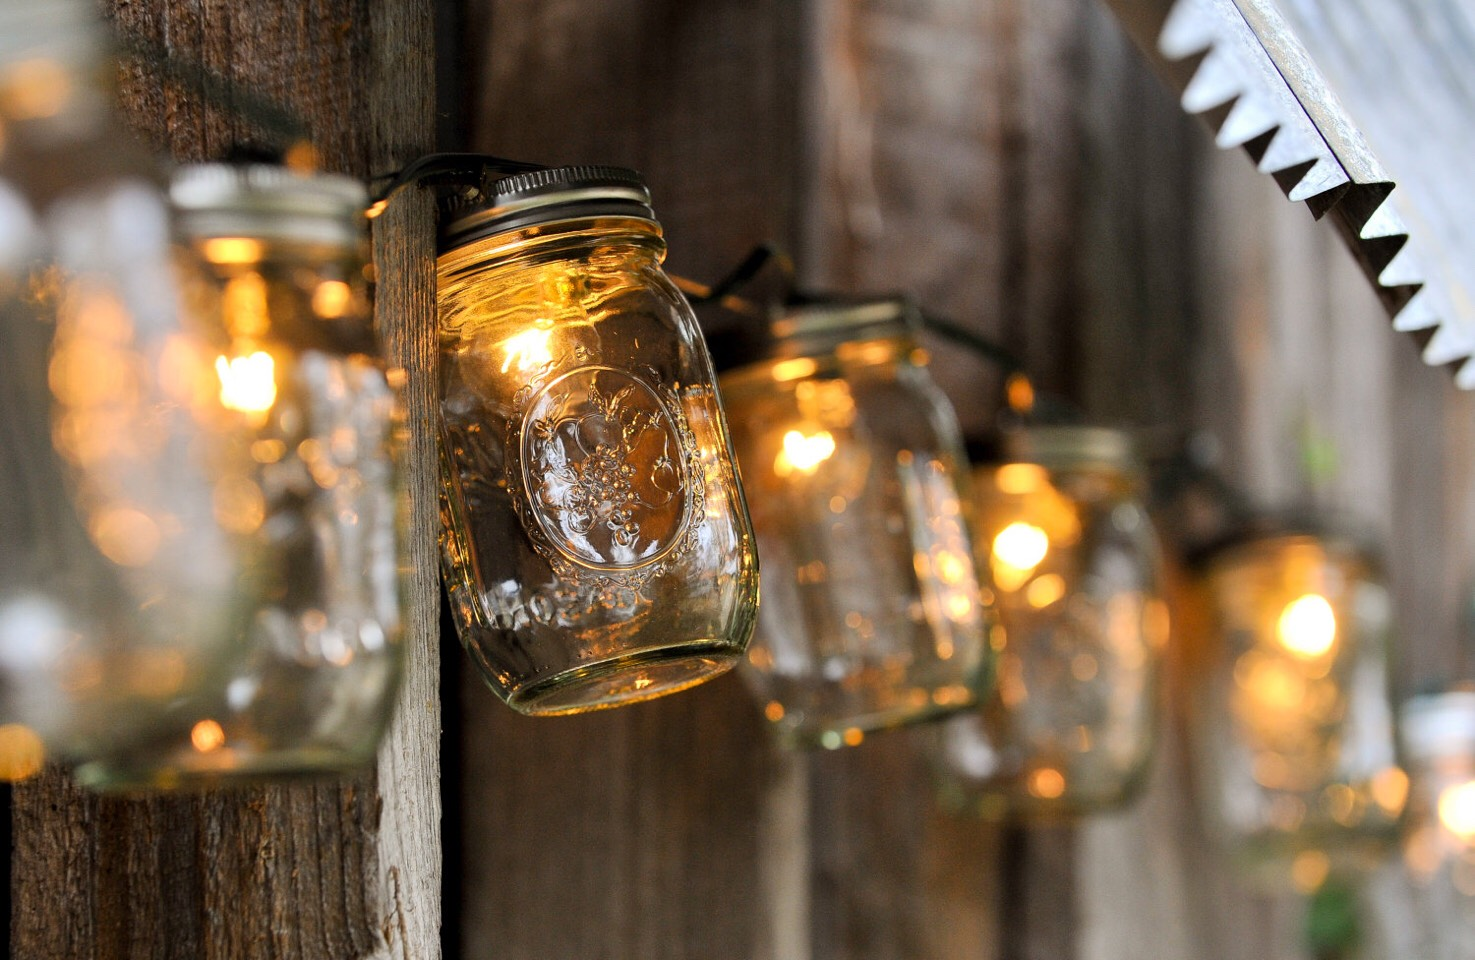 Outdoor lighting for events look so cute and make the area seem more cozy